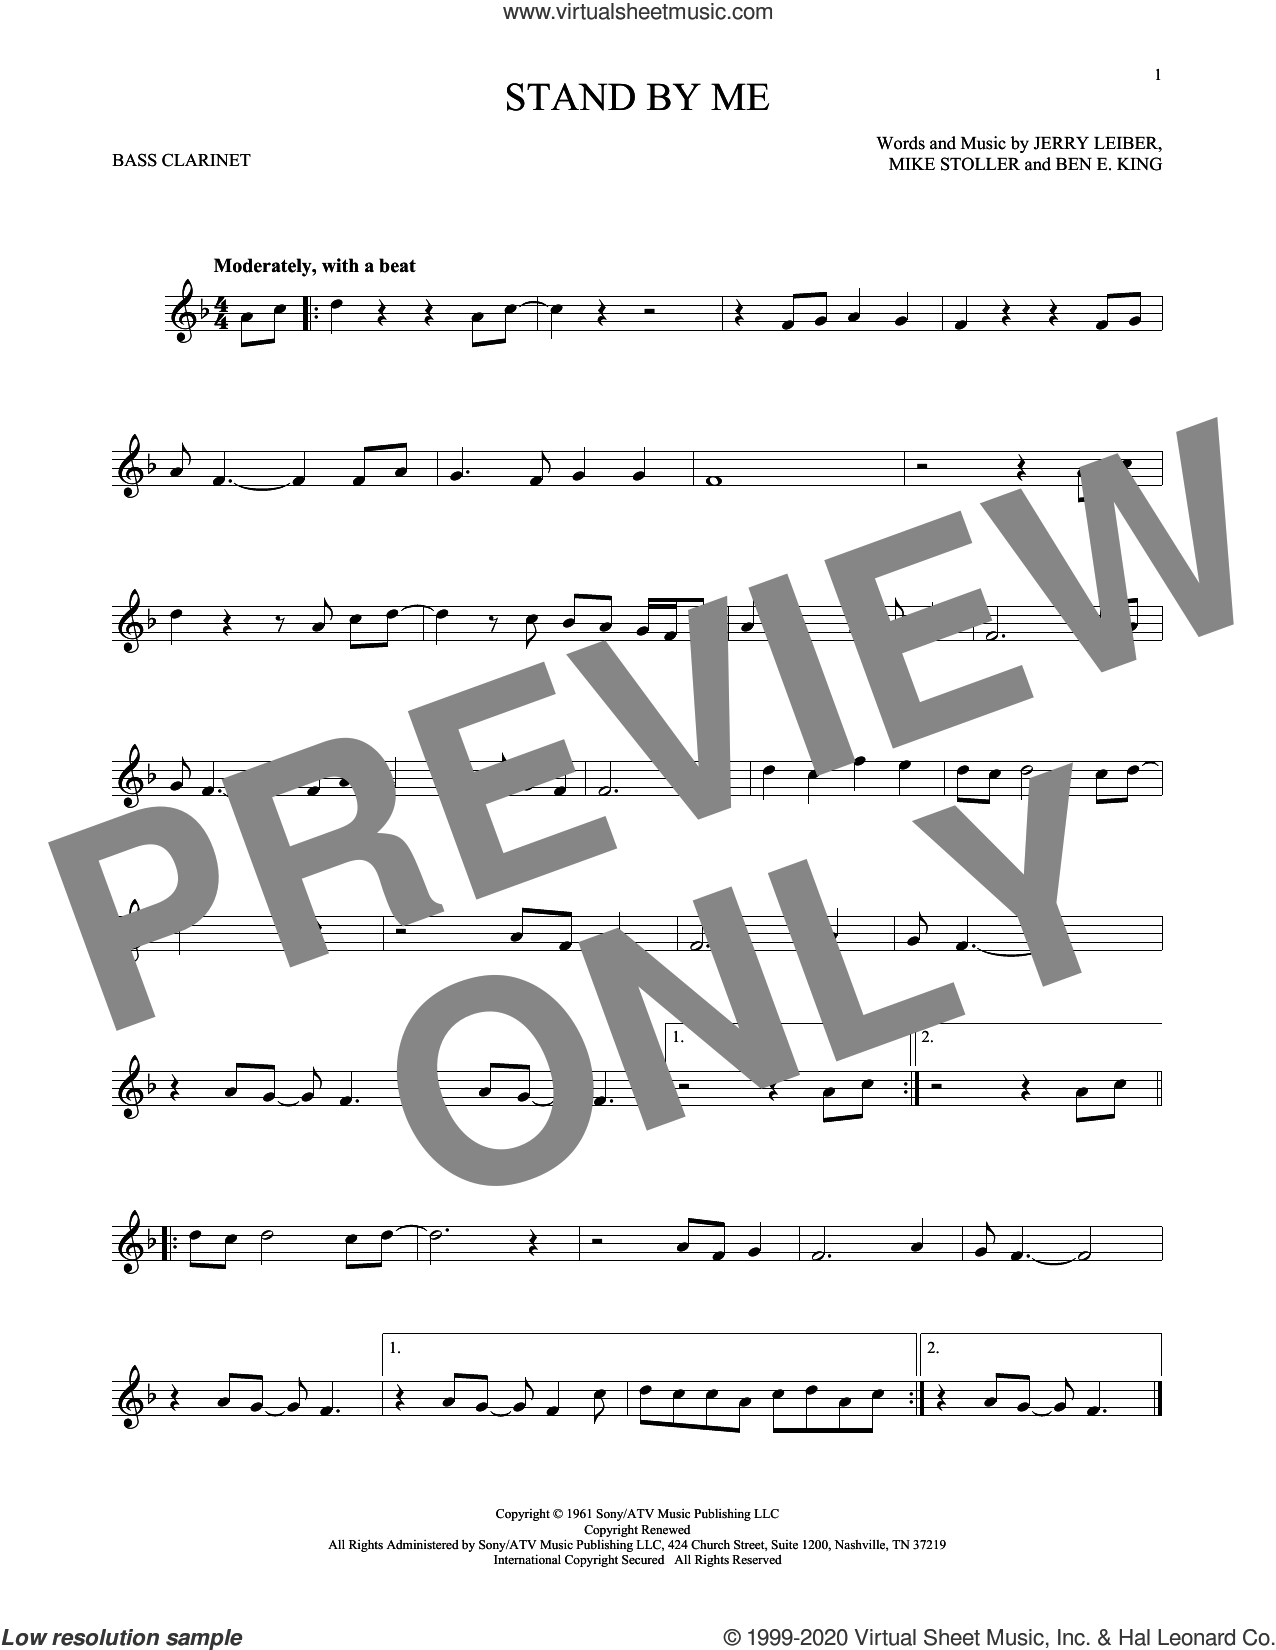 Stand By Me sheet music for Bass Clarinet Solo (clarinetto basso) by Ben E. King, Jerry Leiber and Mike Stoller, intermediate skill level